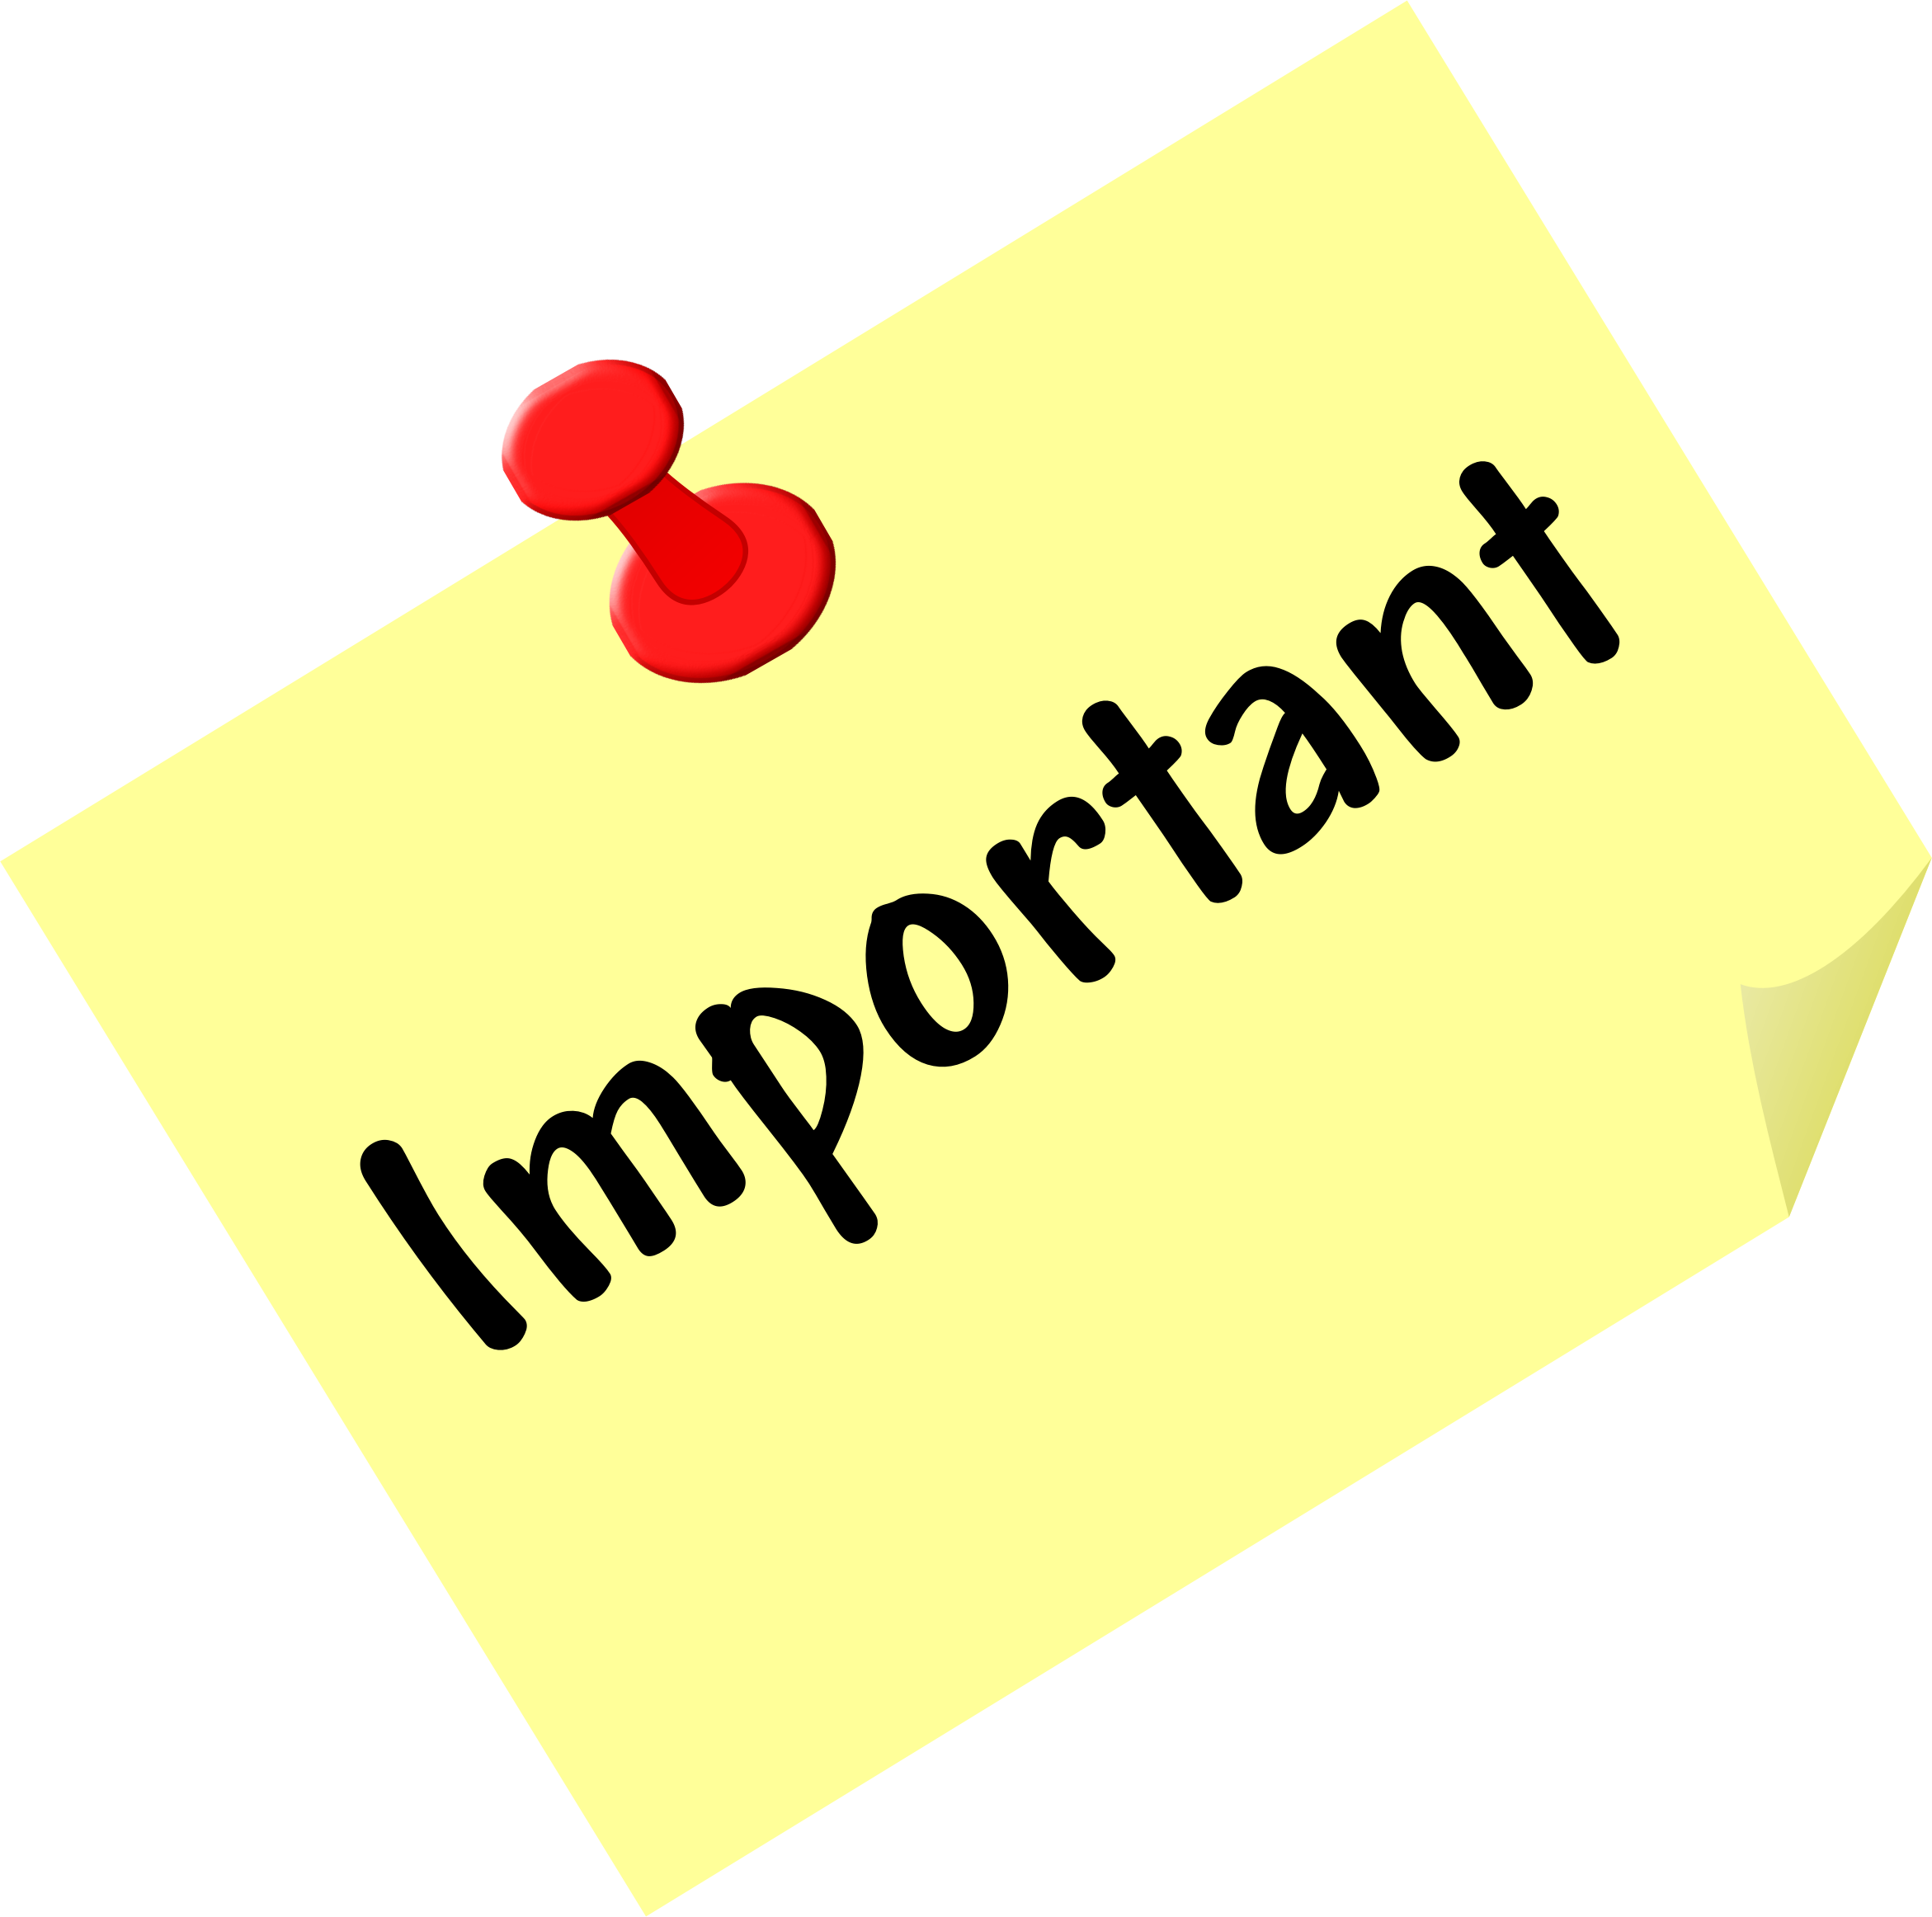 Information clipart important, Information important Transparent ...